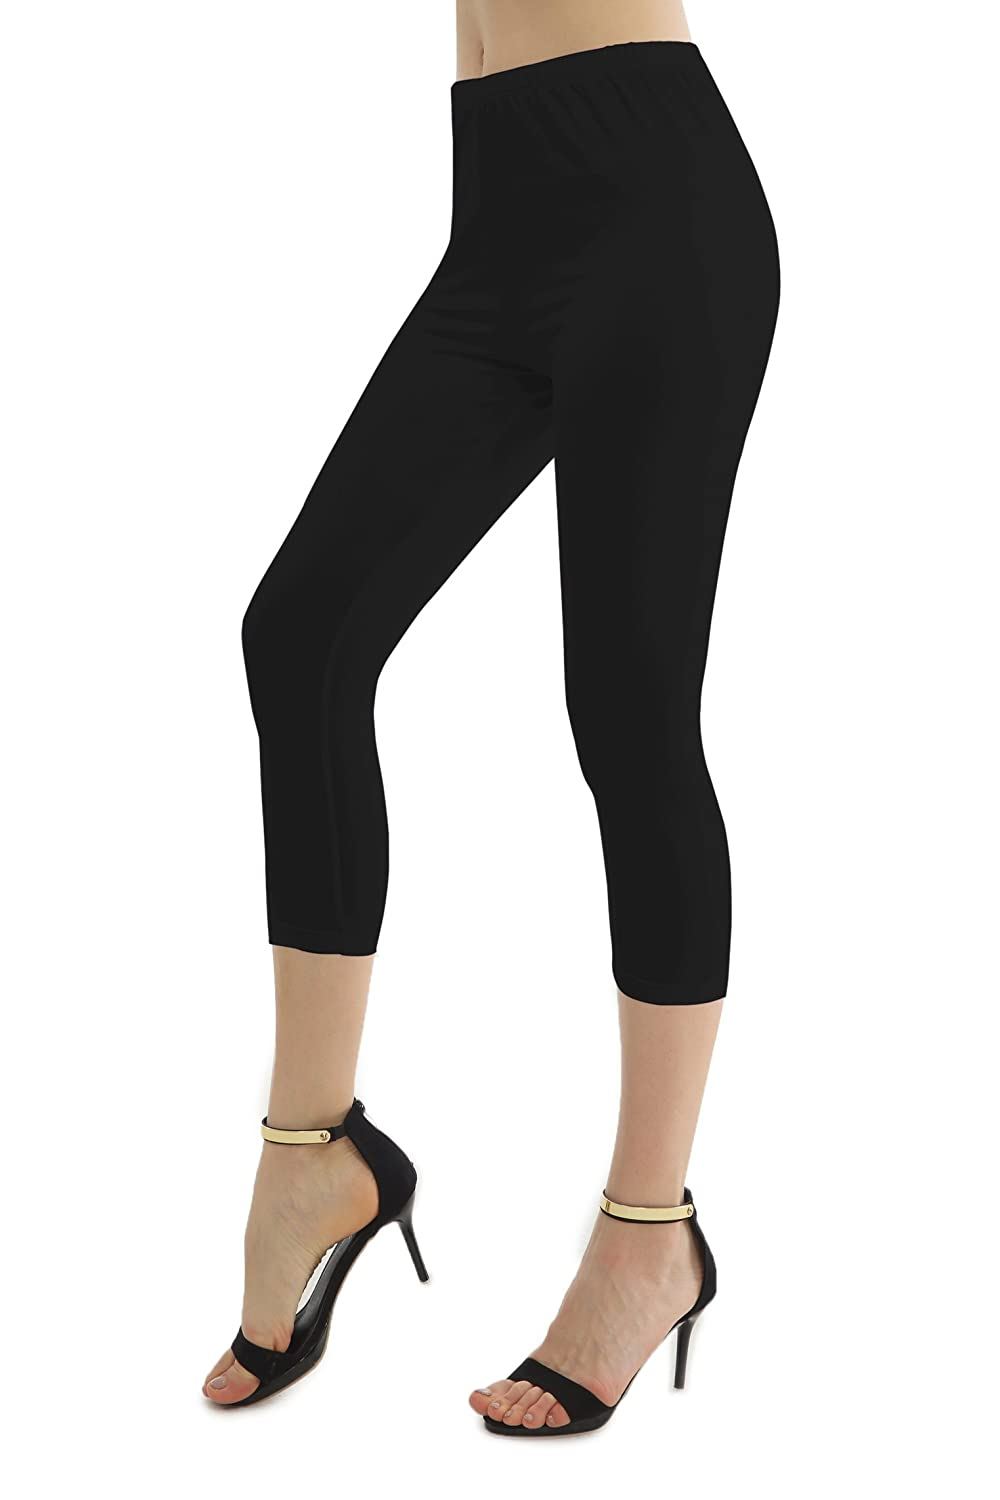 12edb8586b Our high waisted womens fashion leggings are designed for a sleek and sexy  contour that provides a slimming effect on your hips and buttocks.